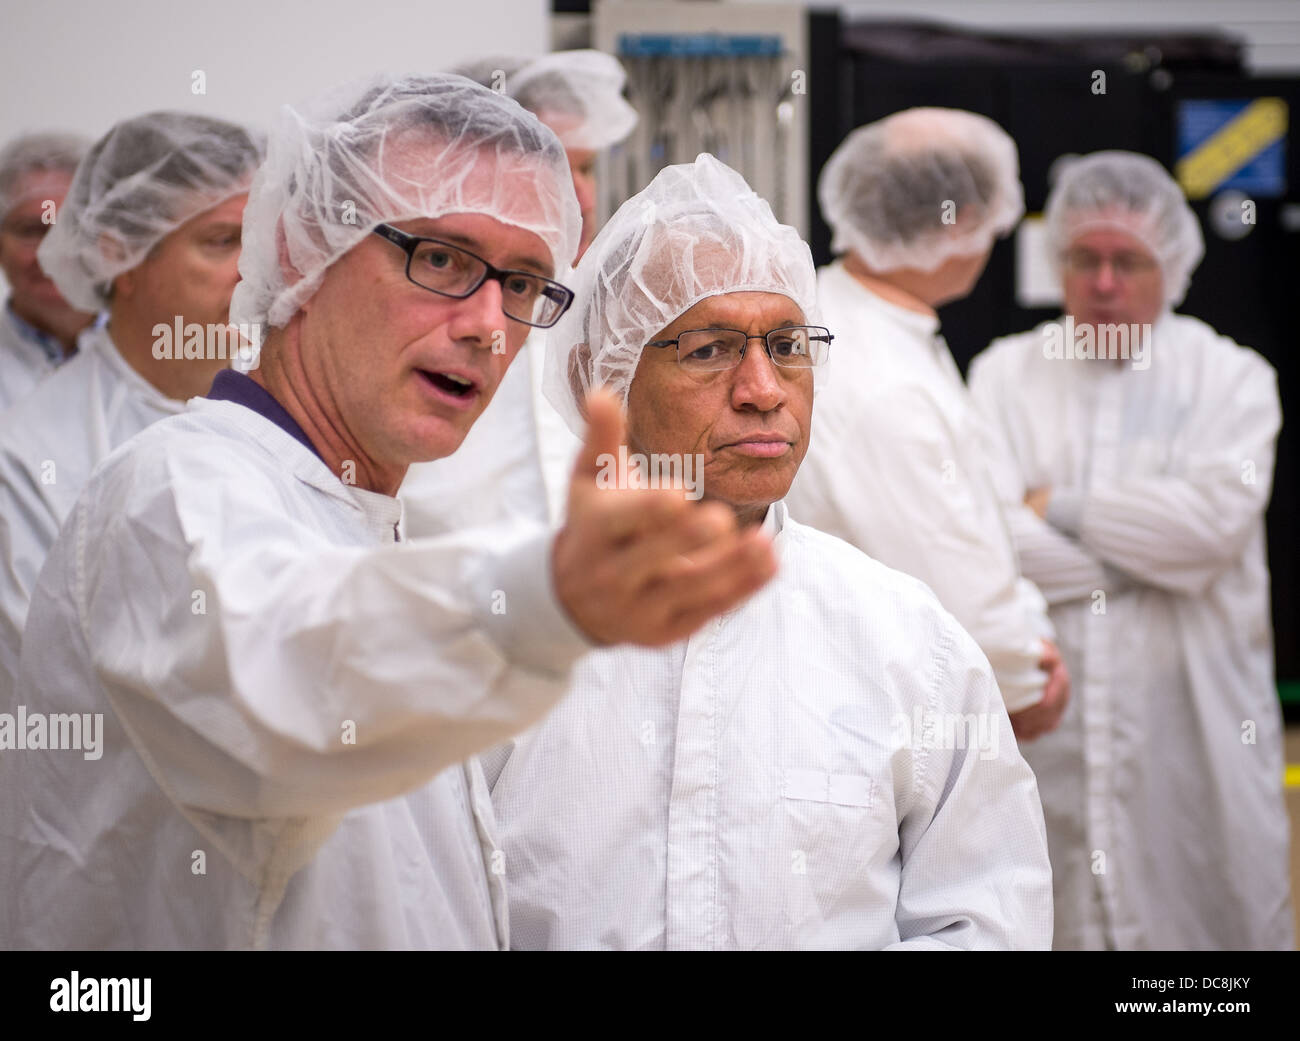 NASA Administrator Charles Bolden, right, listens as Tom Jones from Orbital Sciences Corporation talks about the - Stock Image